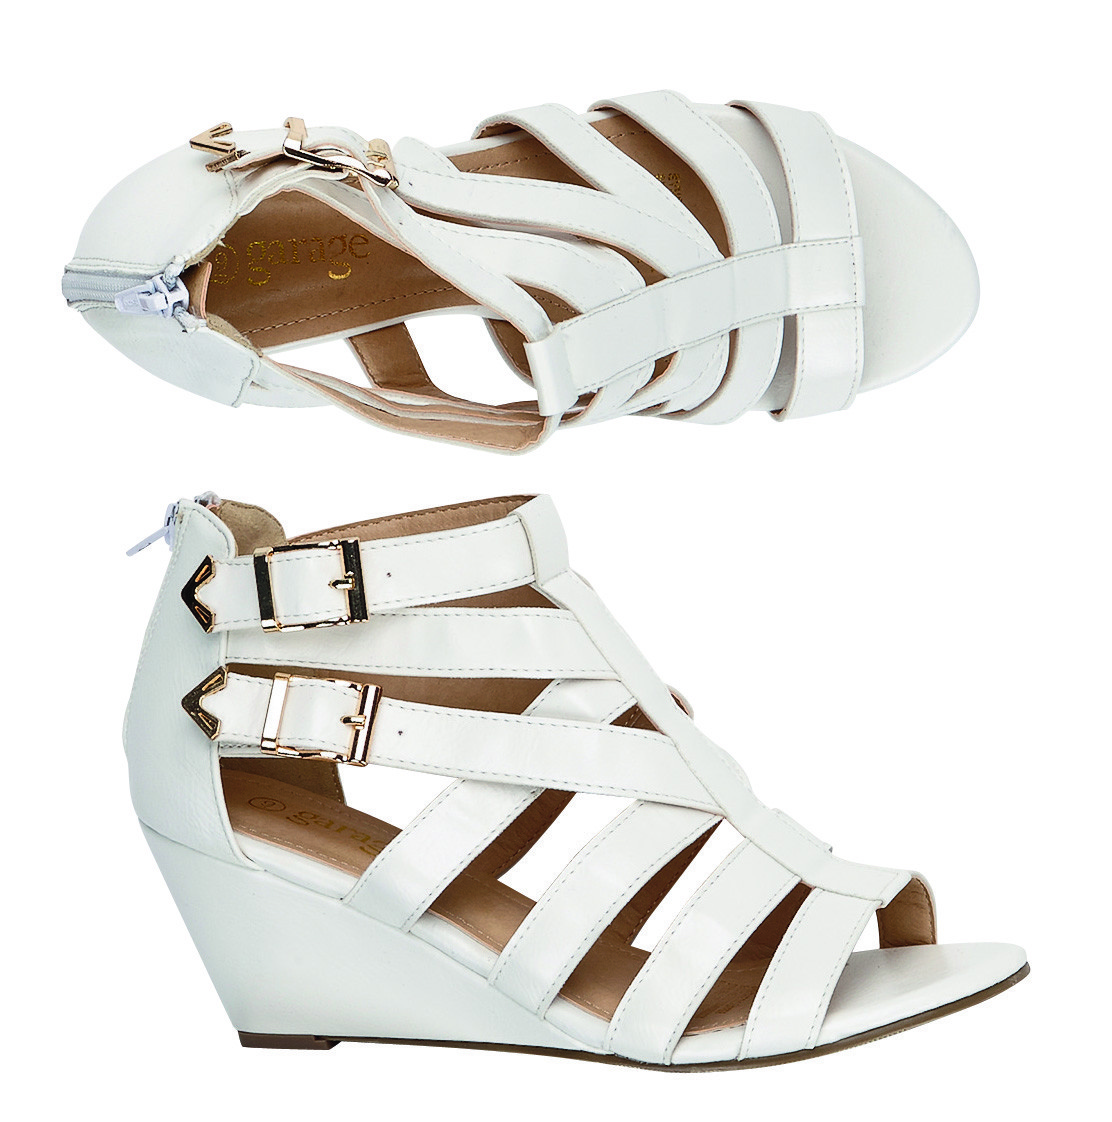 The Warehouse Carman Sandals - White $30